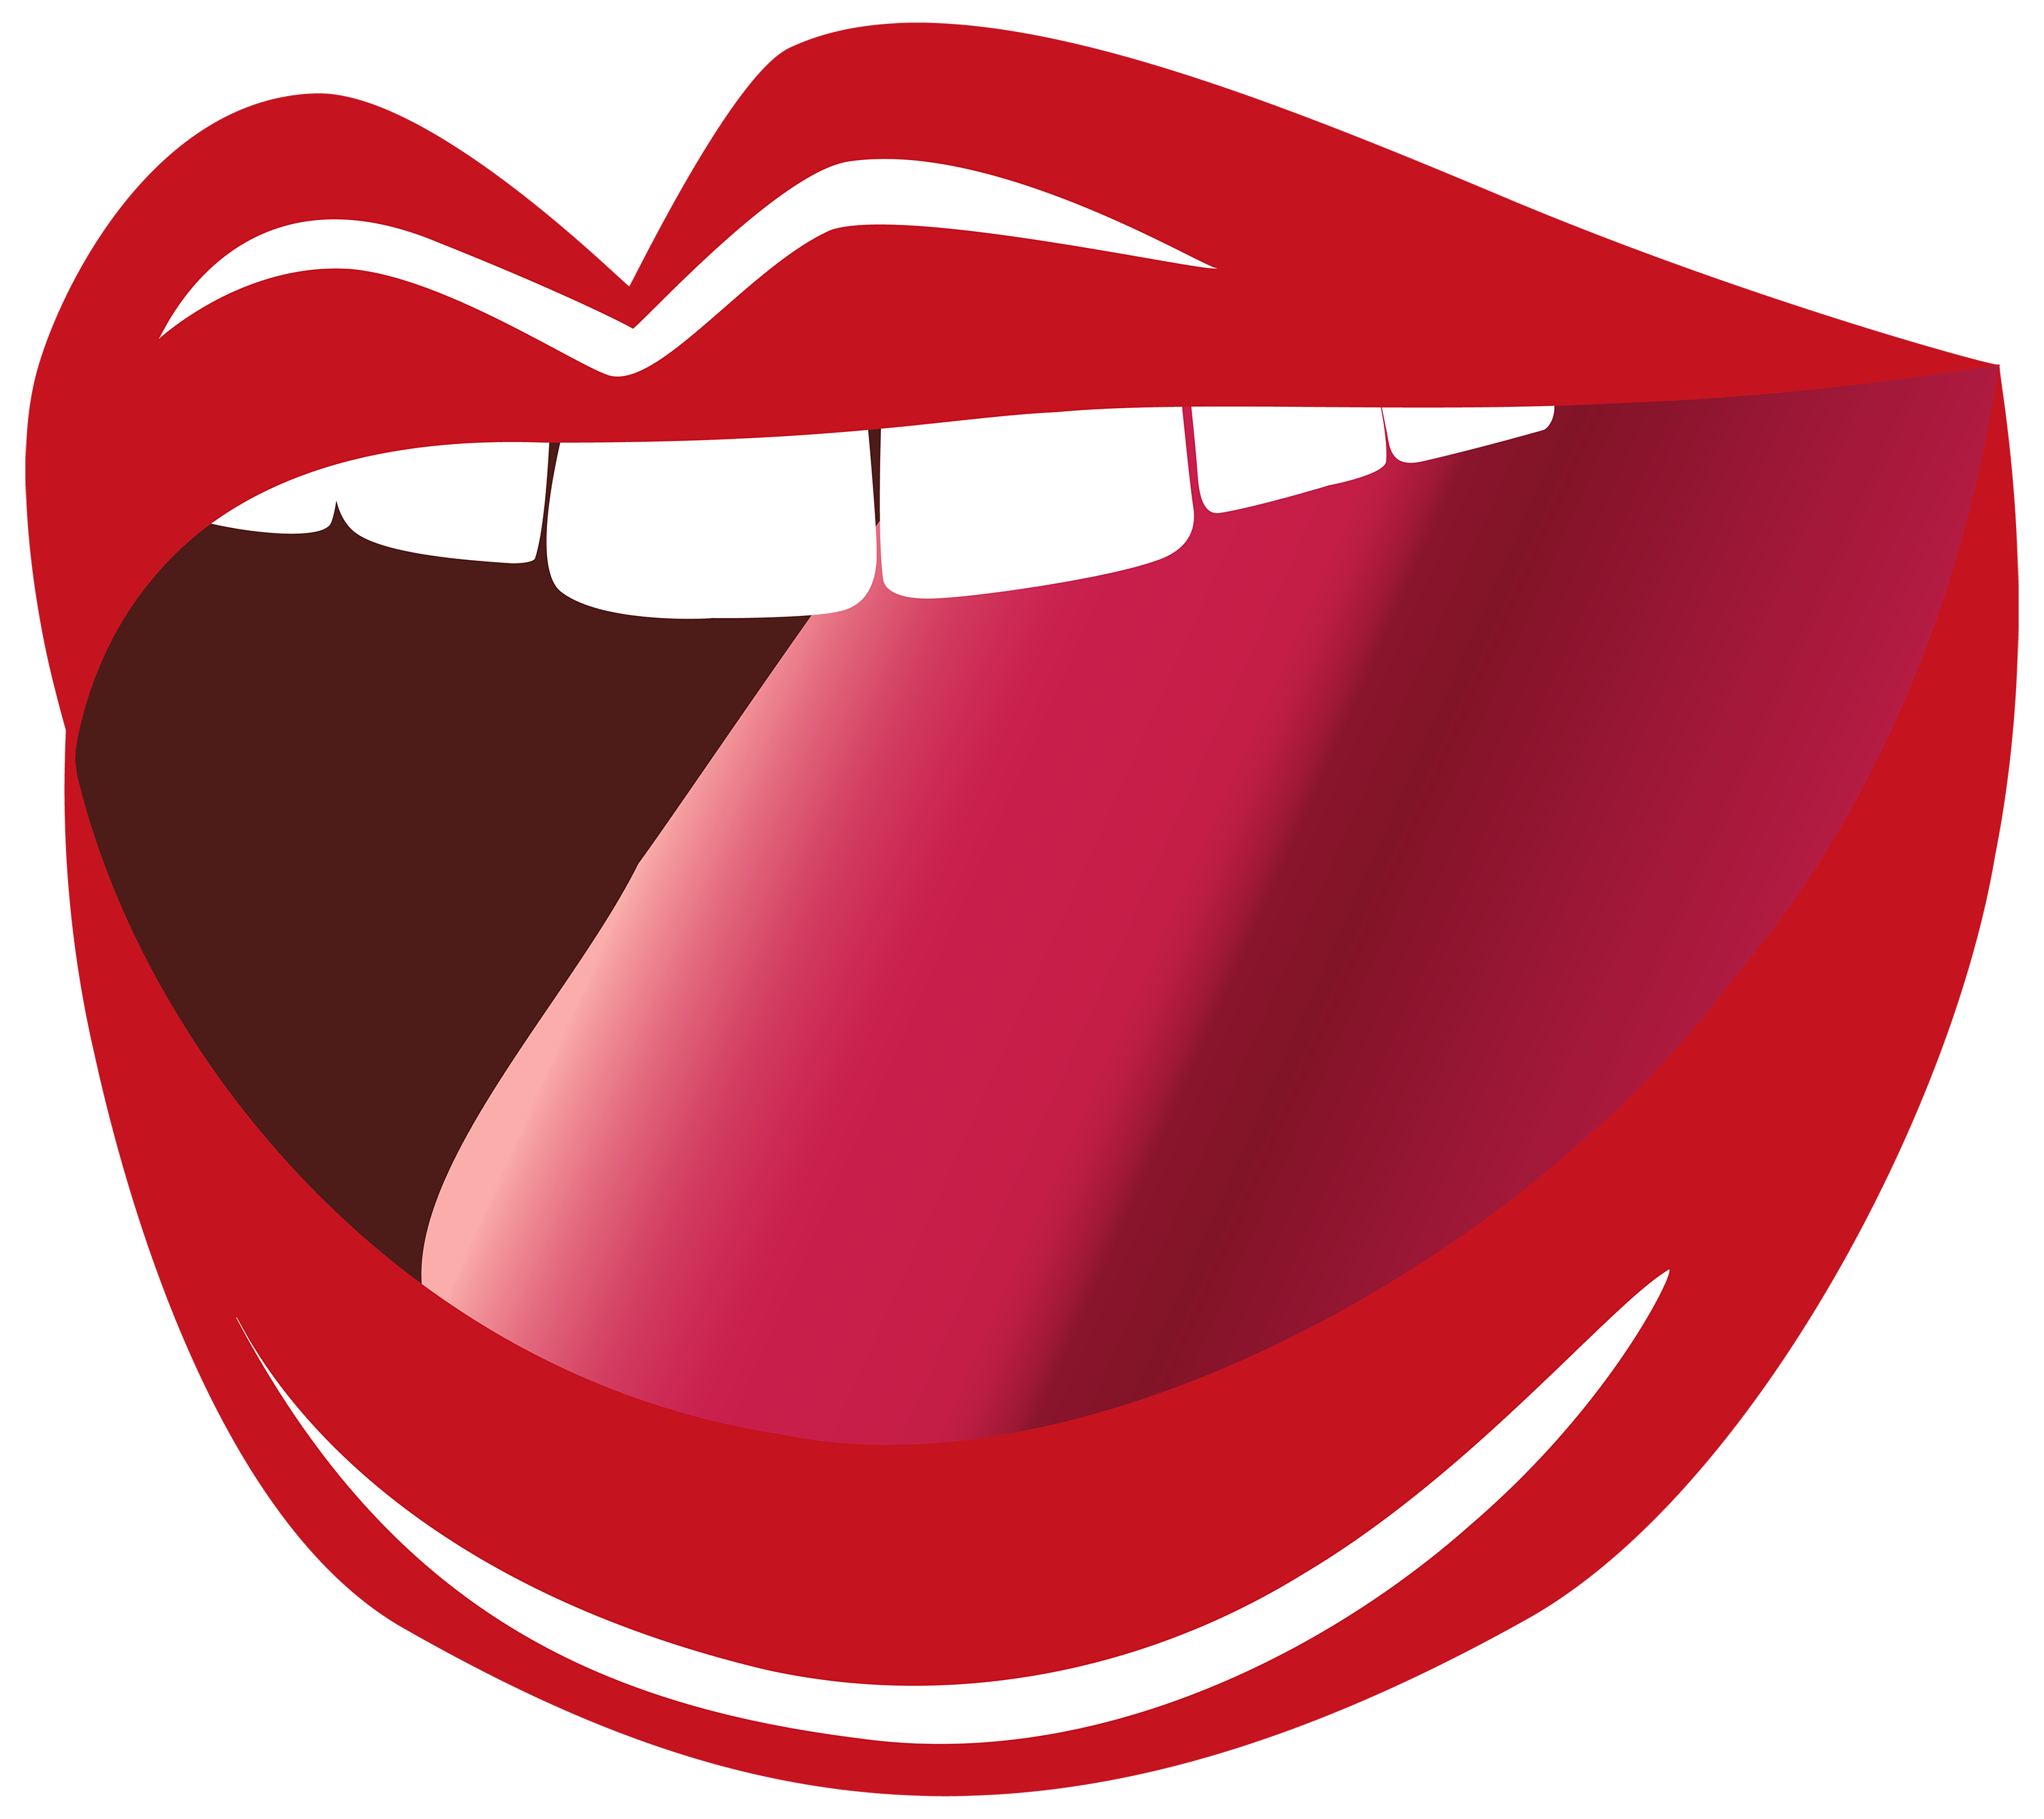 open mouth png clipart image best web clipart #31502